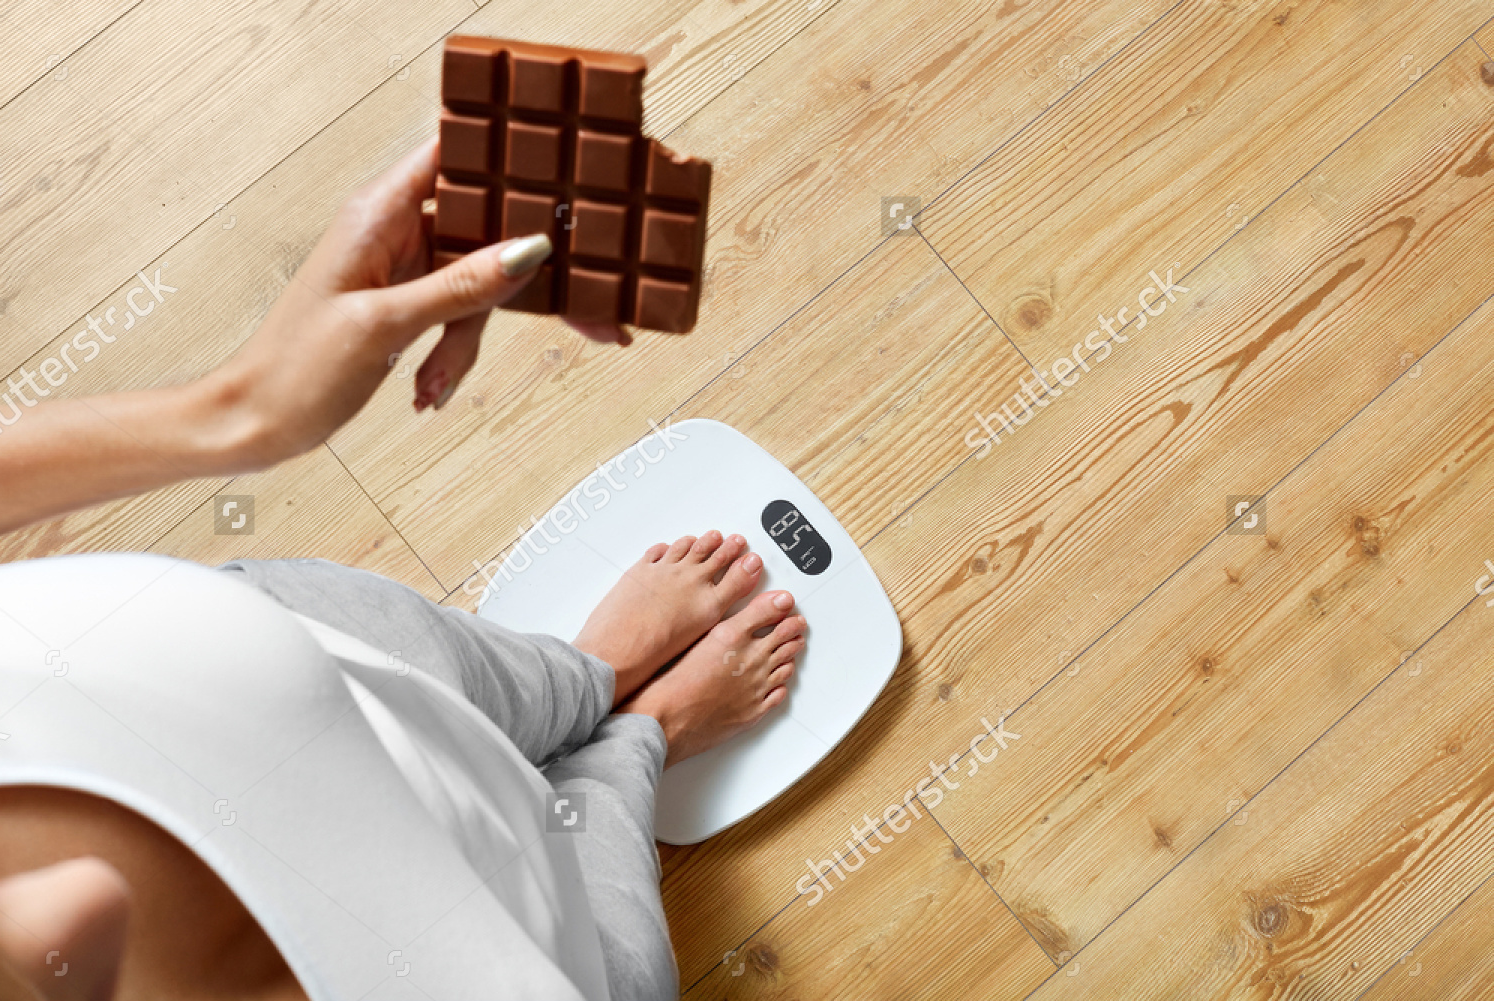 stock-photo-diet-young-woman-standing-on-weighing-scale-and-holding-chocolate-bar-sweets-are-unhealthy-junk-345851126.jpg